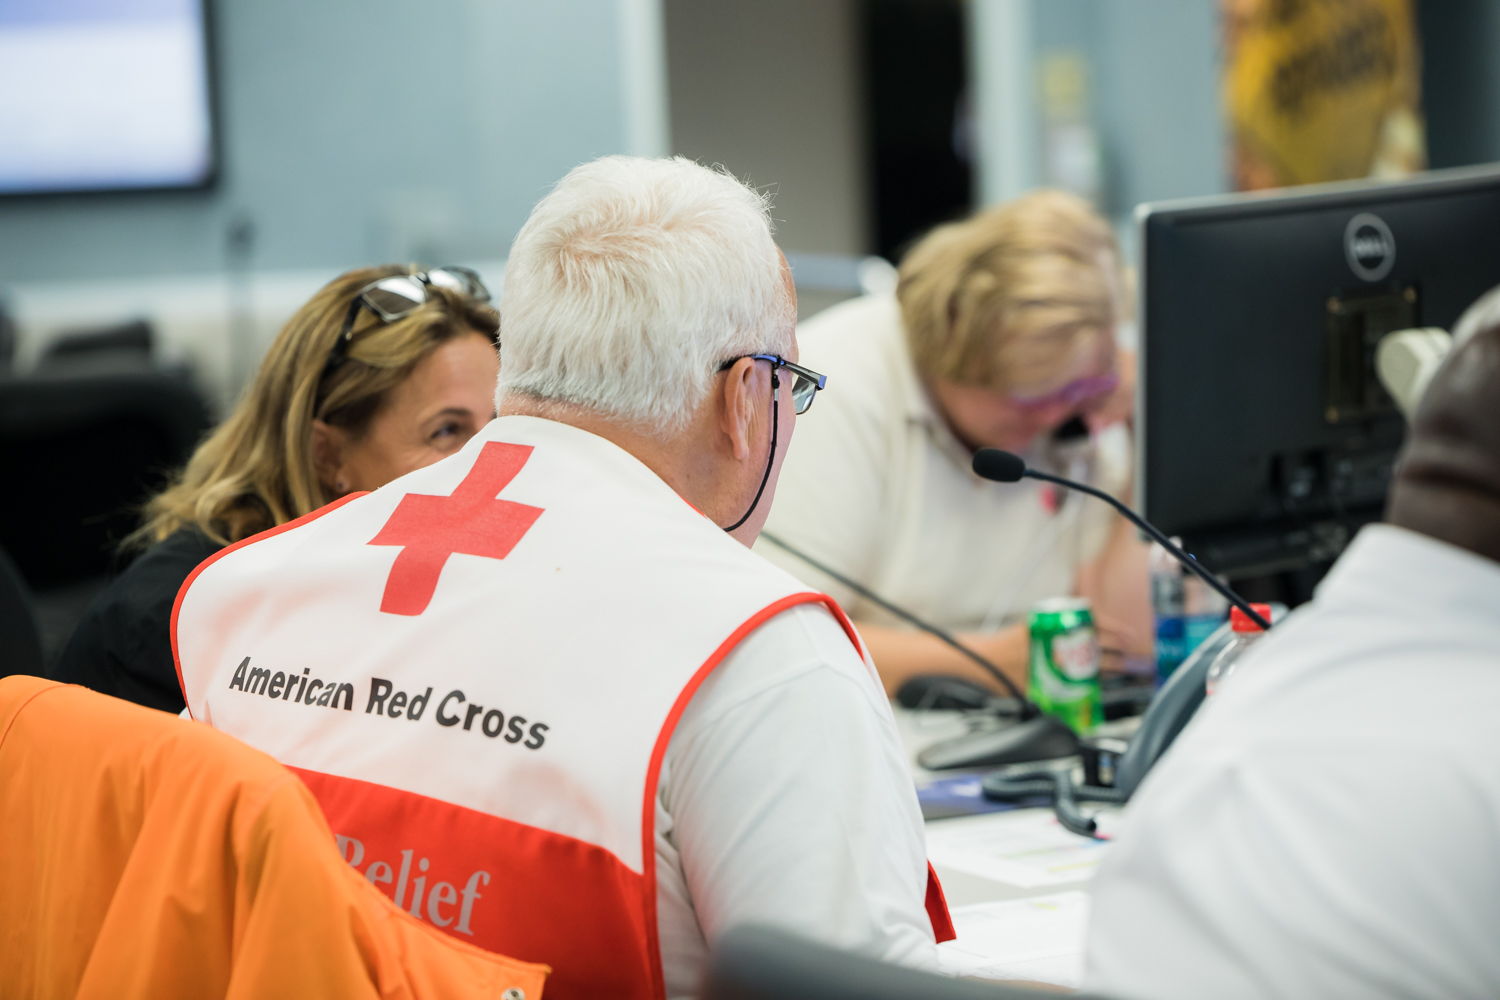 American Red Cross personnel